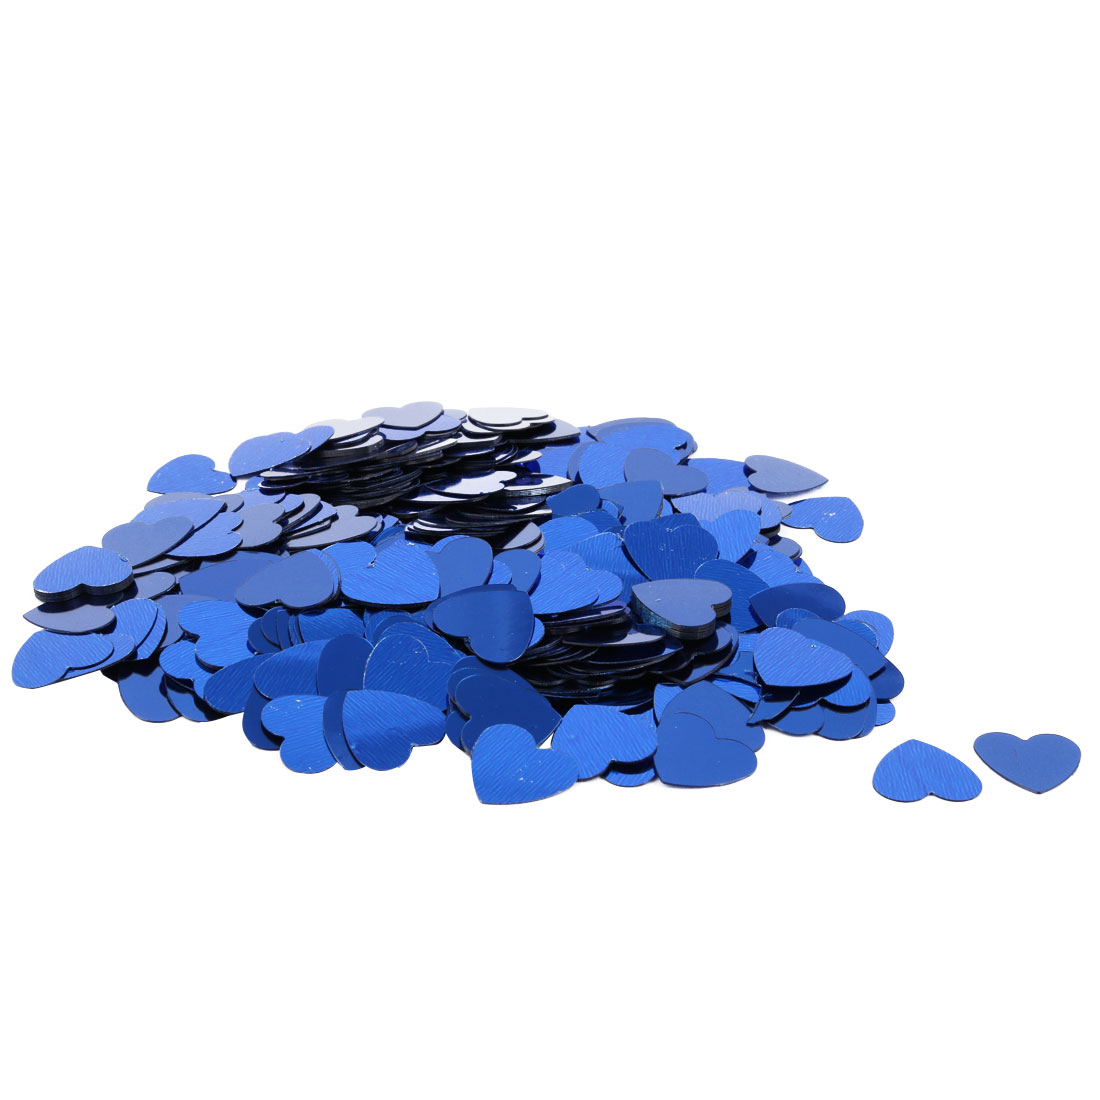 Wedding Party Plastic Heart Shaped DIY Heart Sprinkles Table Decoration Blue 500 Pcs